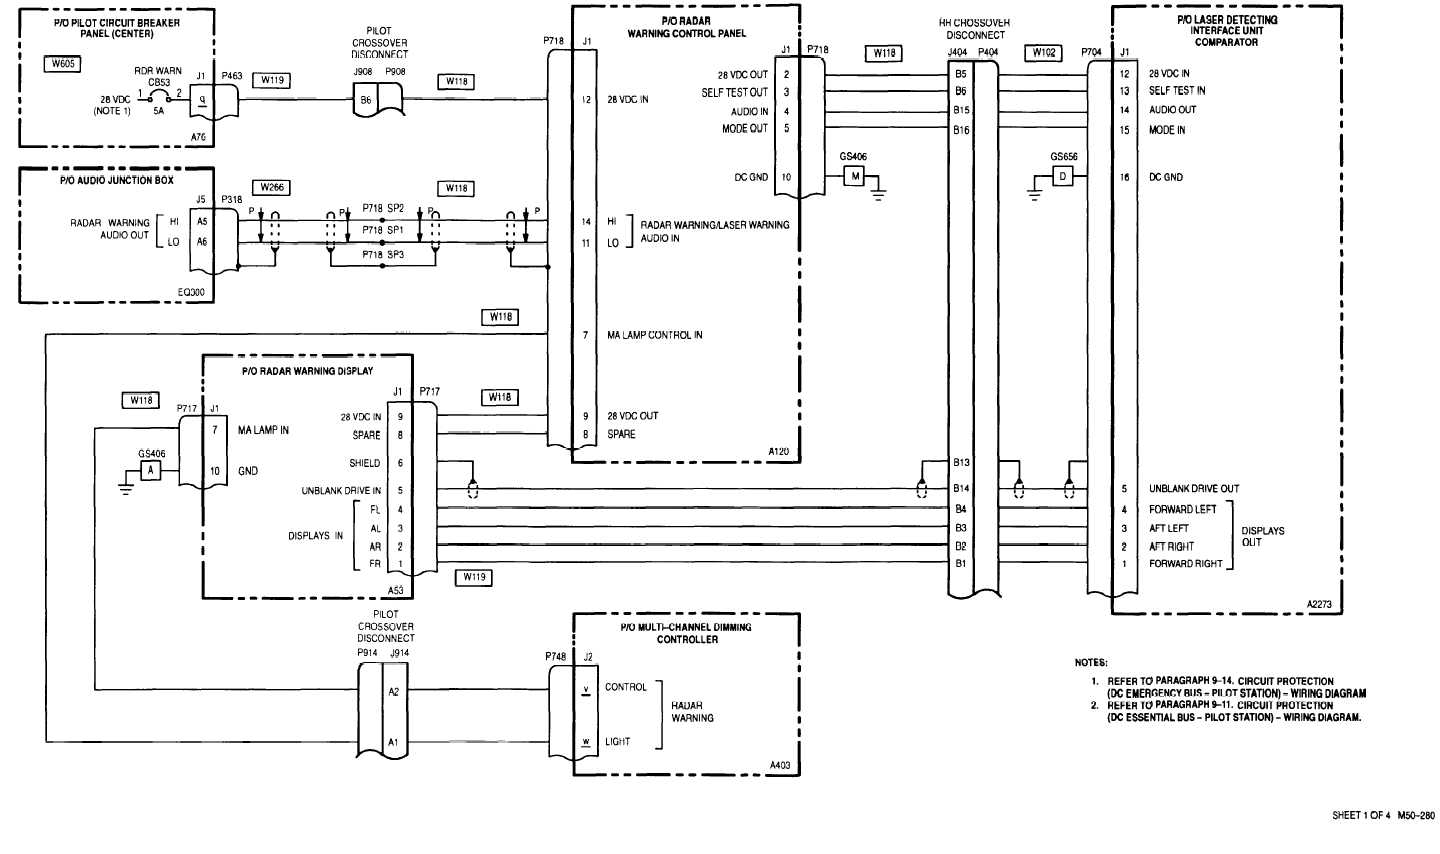 wiring diagram zx600 wiring image wiring diagram wiring diagram zx600 k1 wiring image wiring diagram on wiring diagram zx600